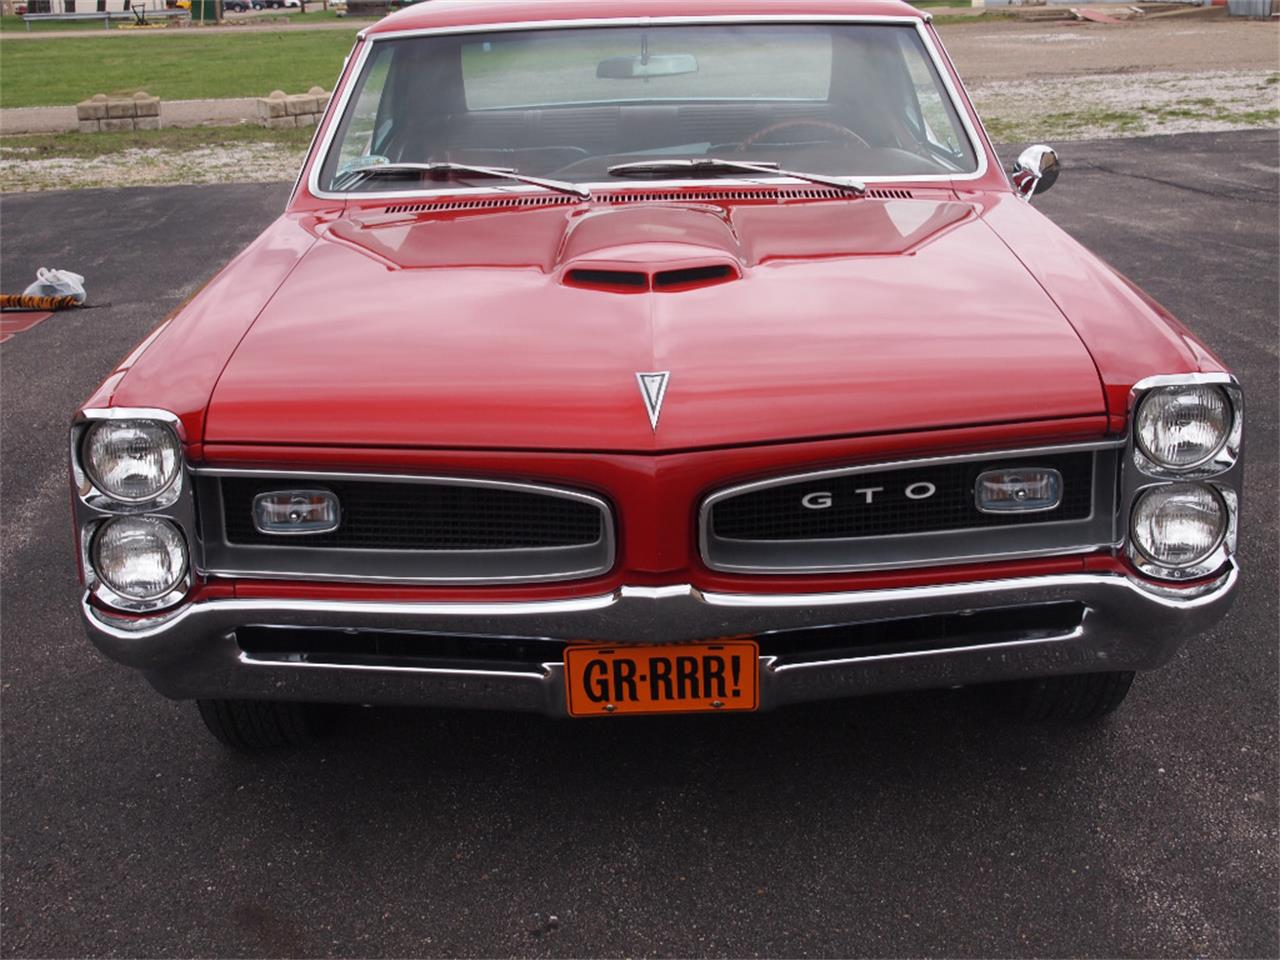 Large Picture of 1966 Pontiac GTO located in Ohio - $59,500.00 Offered by Ohio Corvettes and Muscle Cars - KYVG